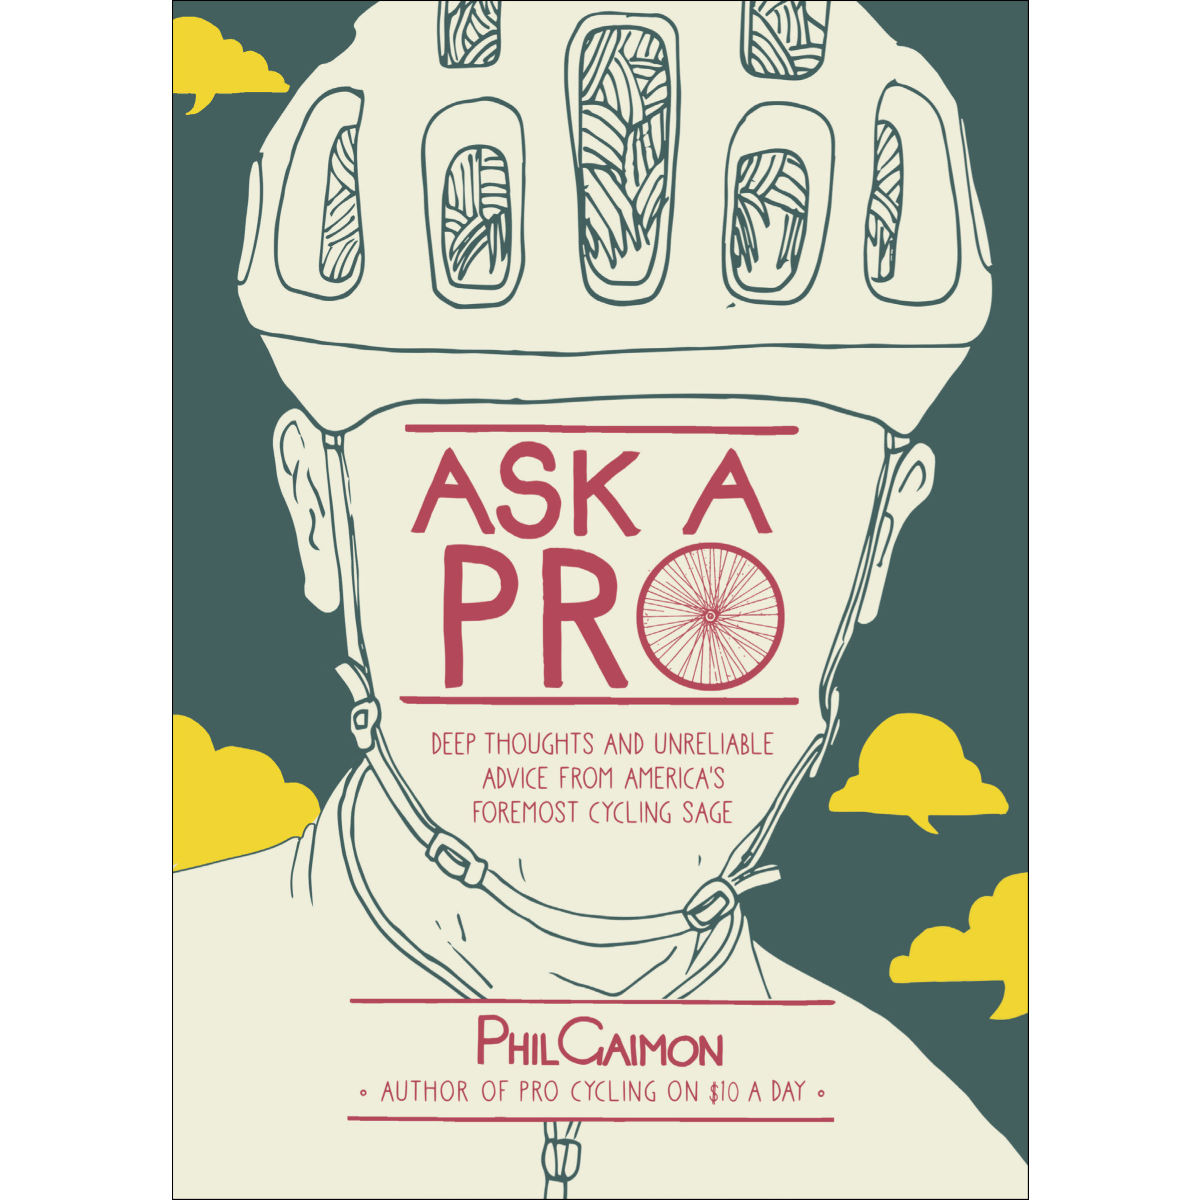 Image of Livre Cordee « Ask a Pro - Deep Thoughts and Unreliable Advice » (en anglais)